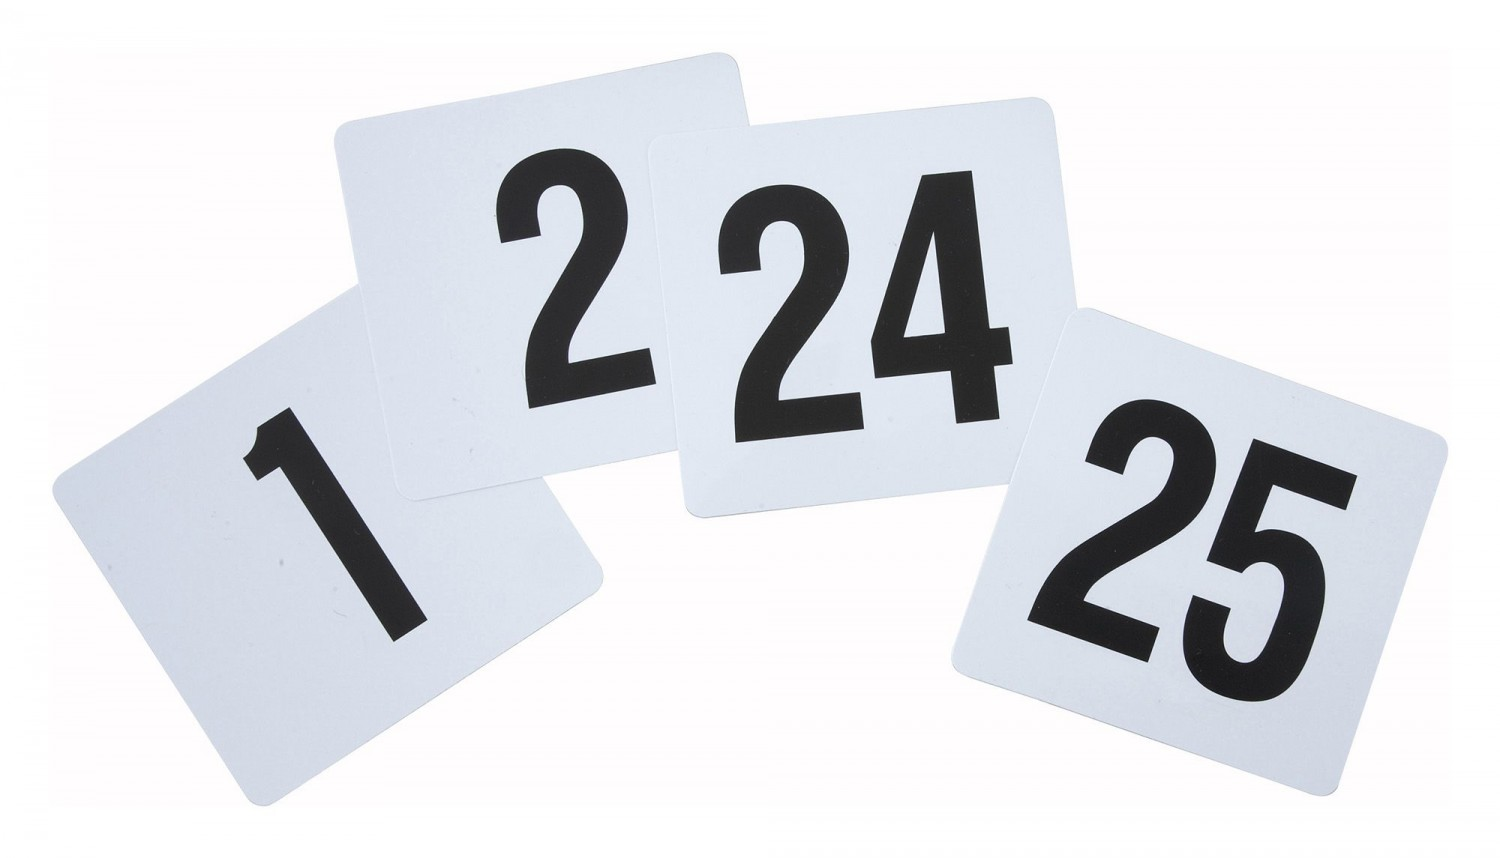 Winco TBN-25 Plastic Table Numbers 1-25 - 1 pack